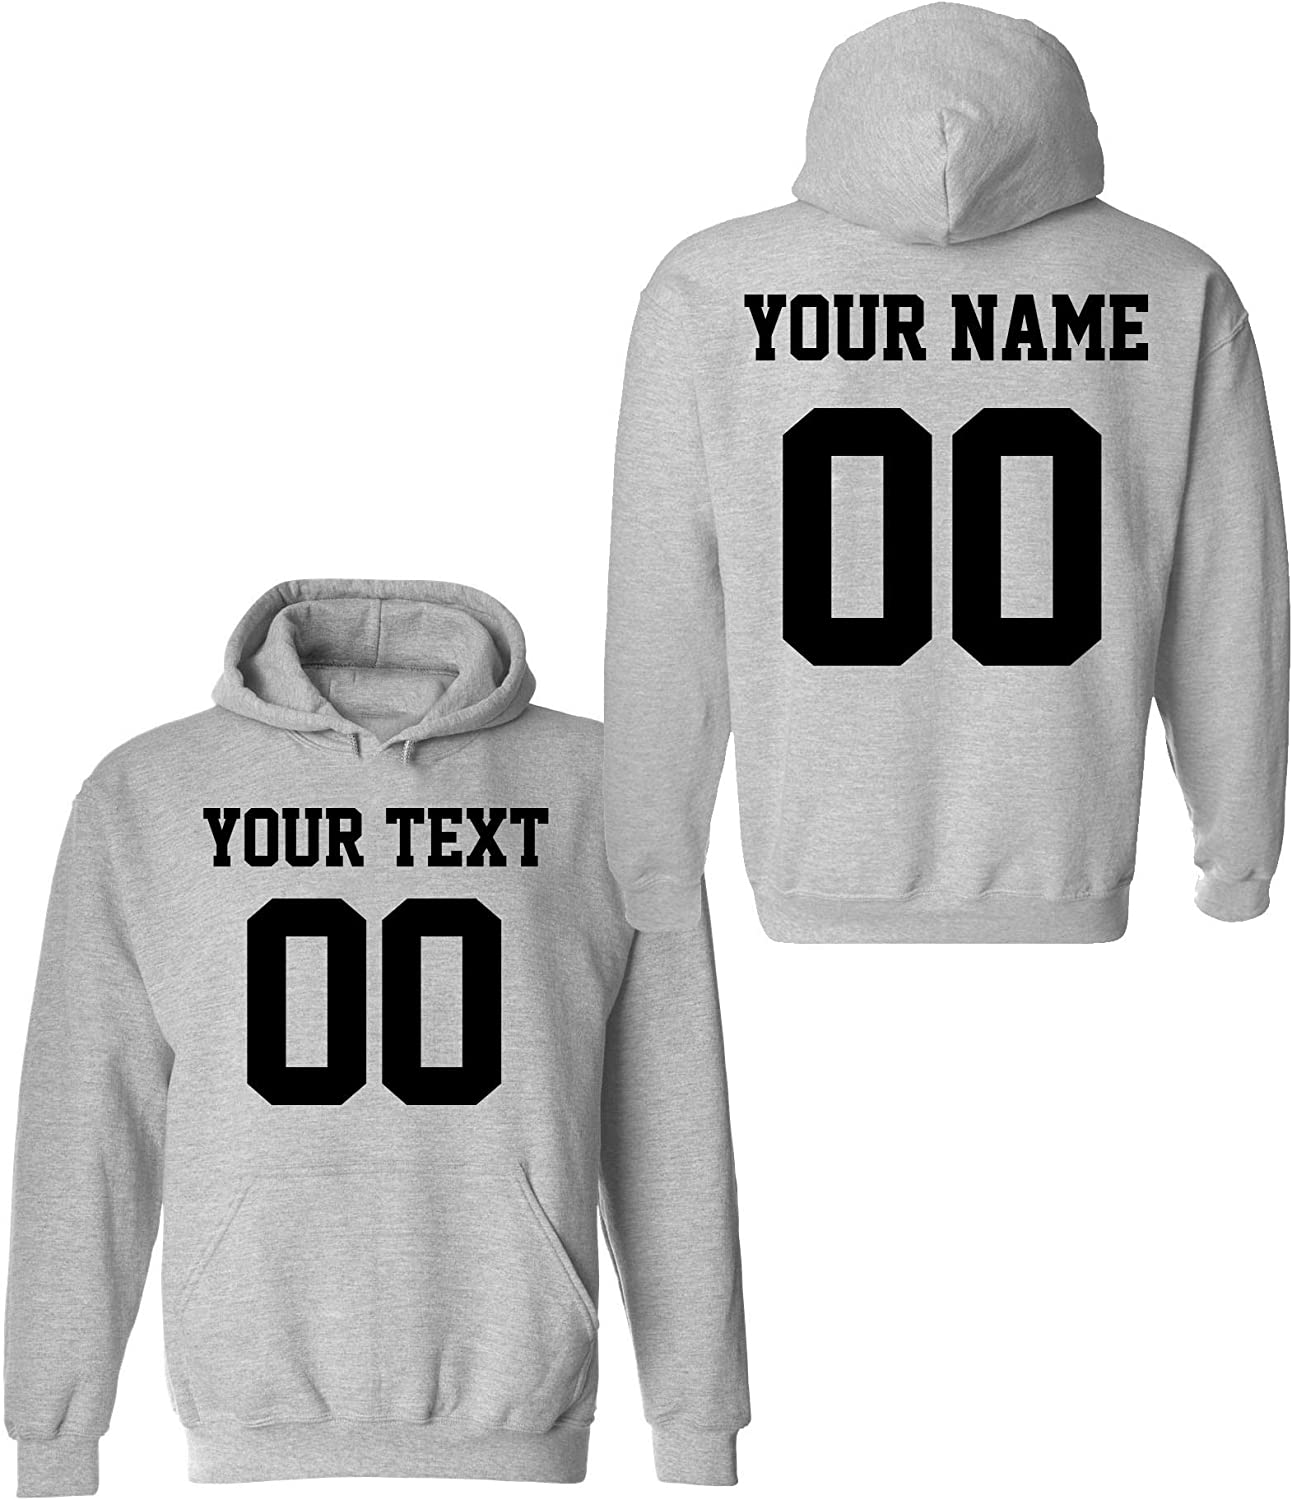 Design Your OWN Hoodie - Max 61% OFF Max 88% OFF 2 Hoodies Jersey sided Custom Pullover